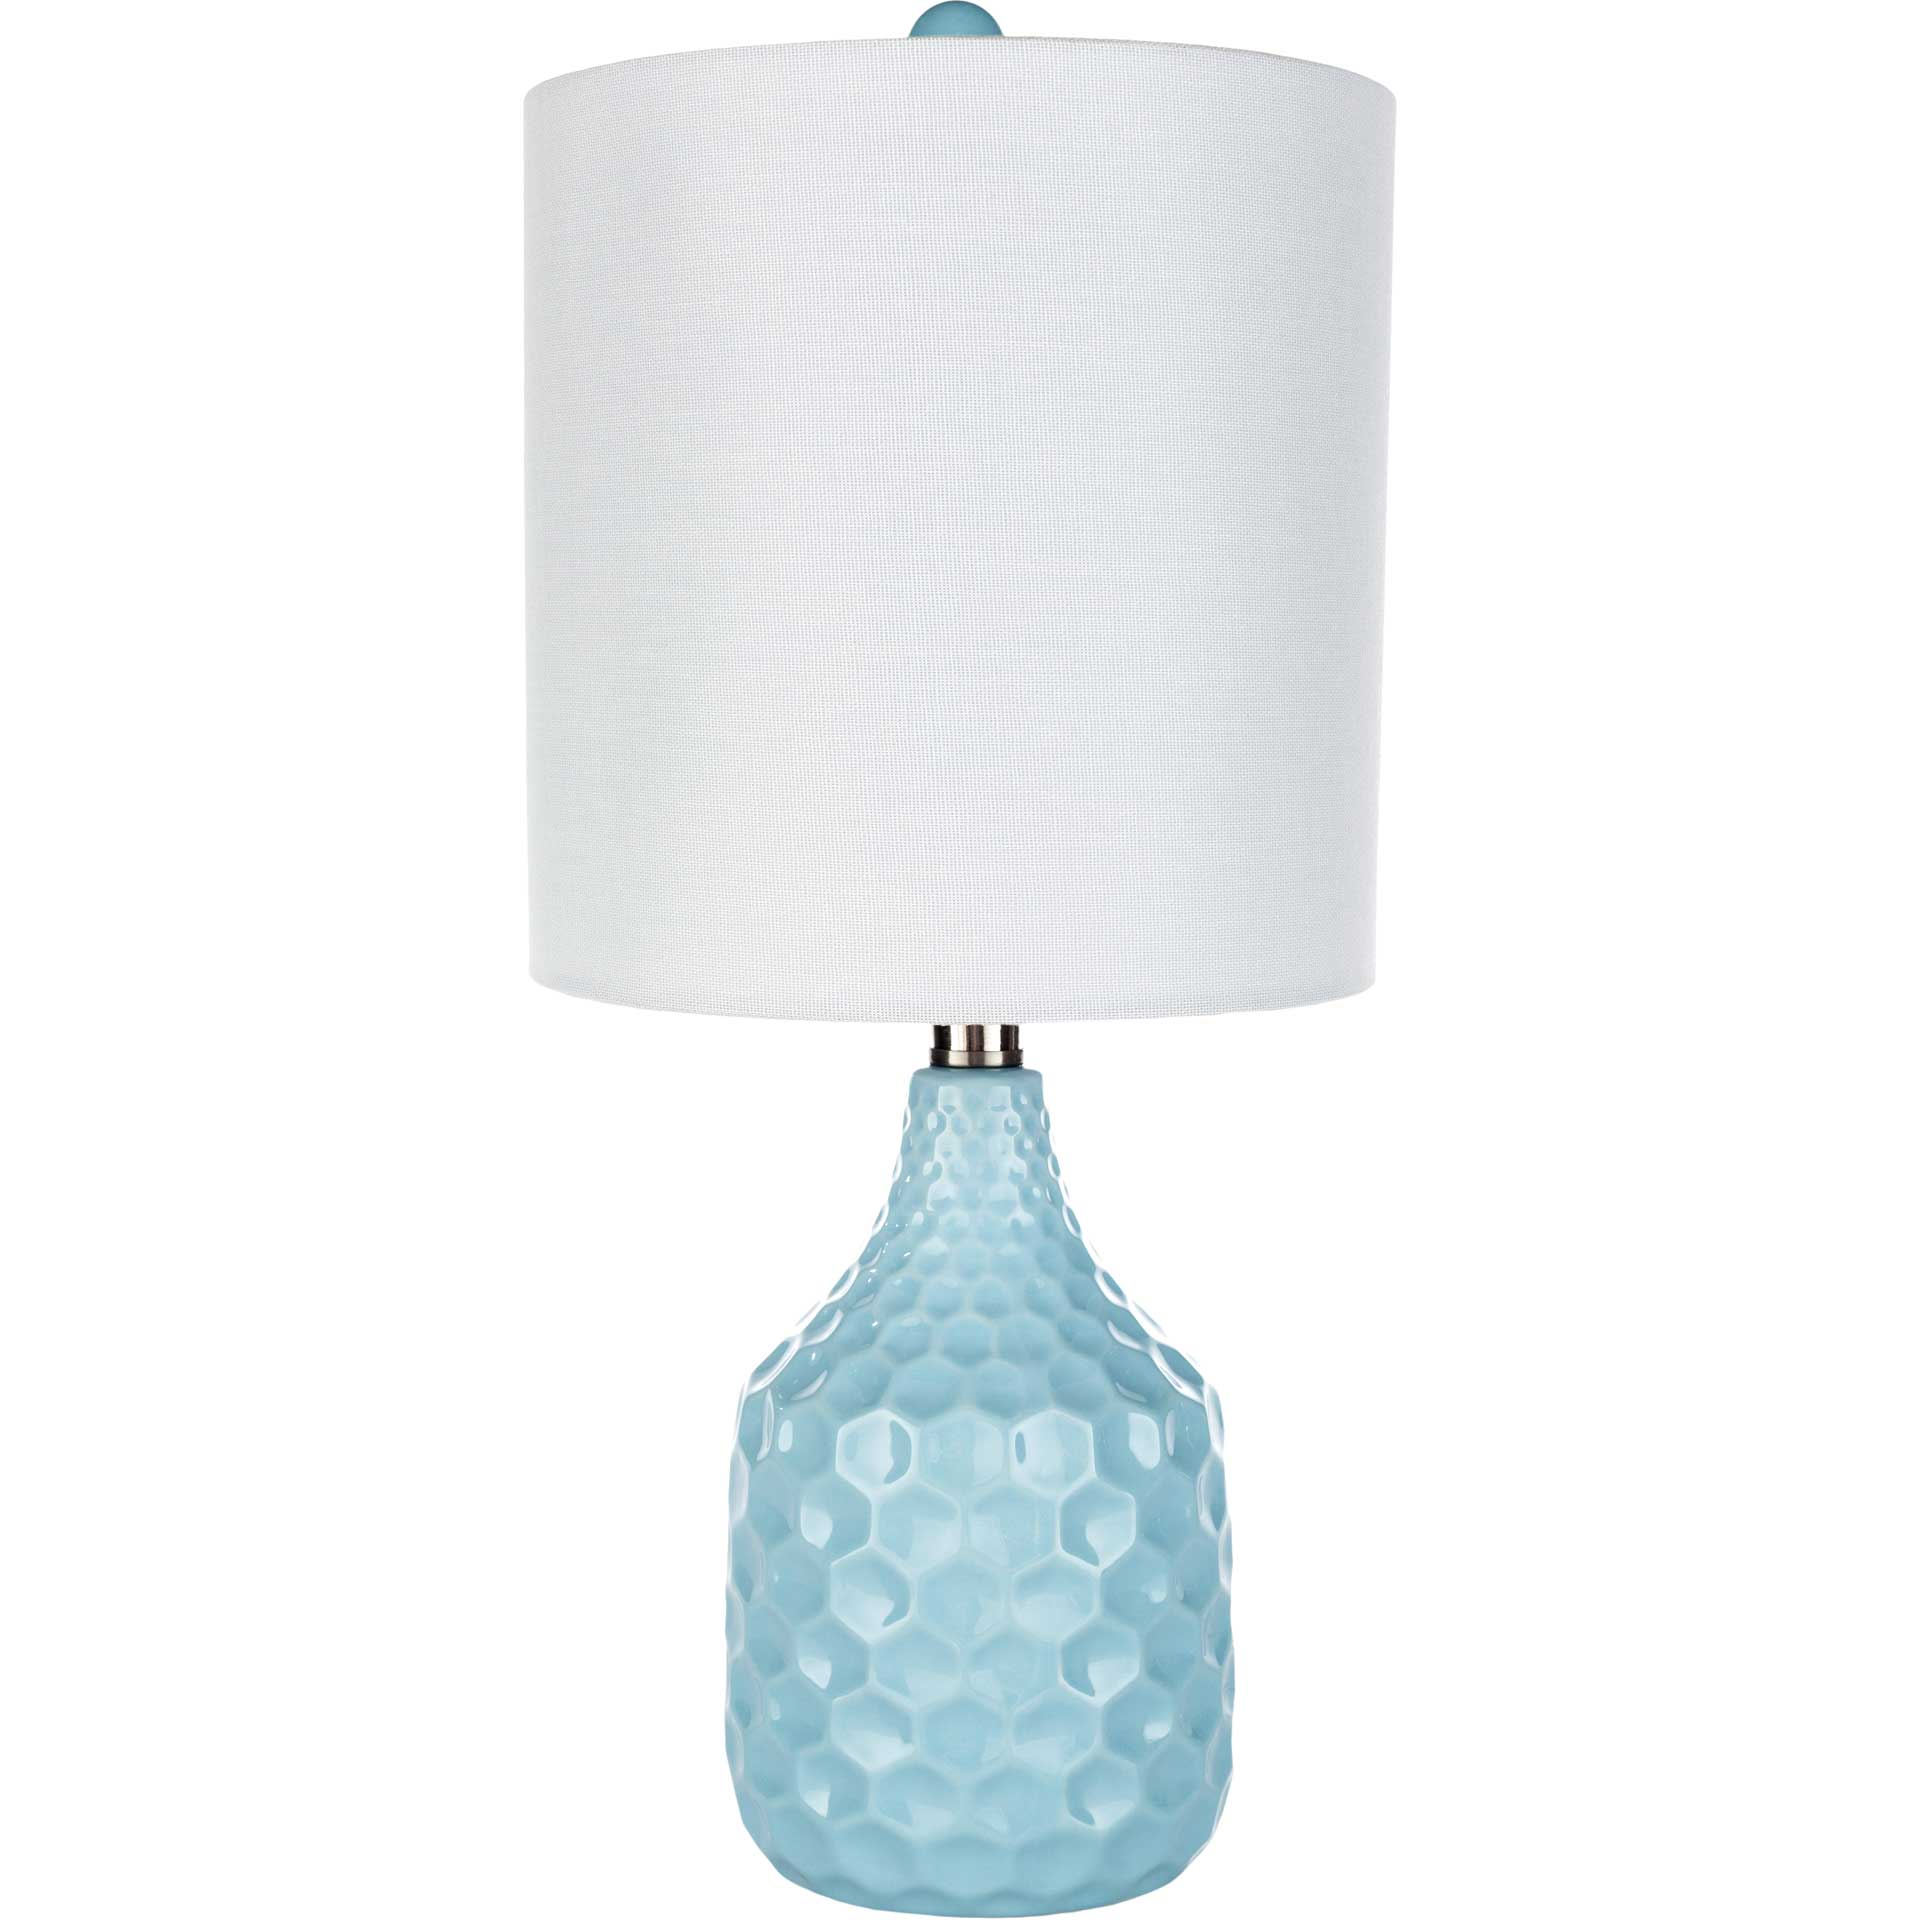 Blaze Table Lamp Aqua/White/Pale Aqua